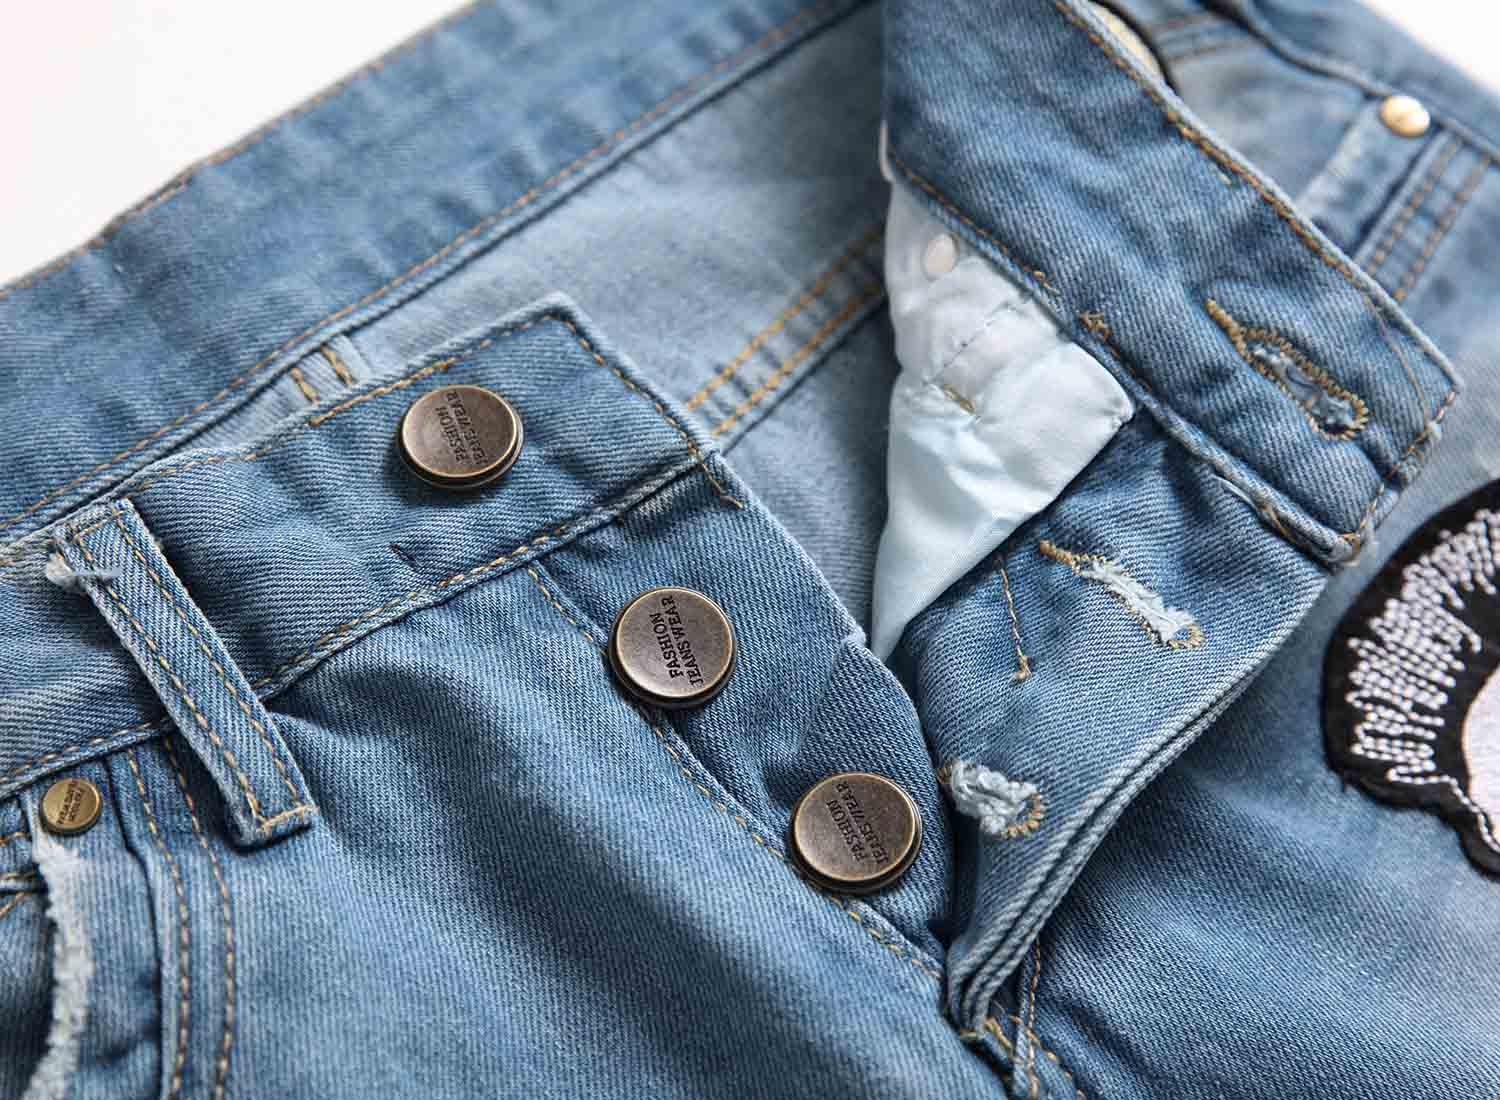 Hairstylist Embroidery Jeans Blue Shabby Pants Zipper Ripped Hole Bike Motorcycle Rock Revival Pants